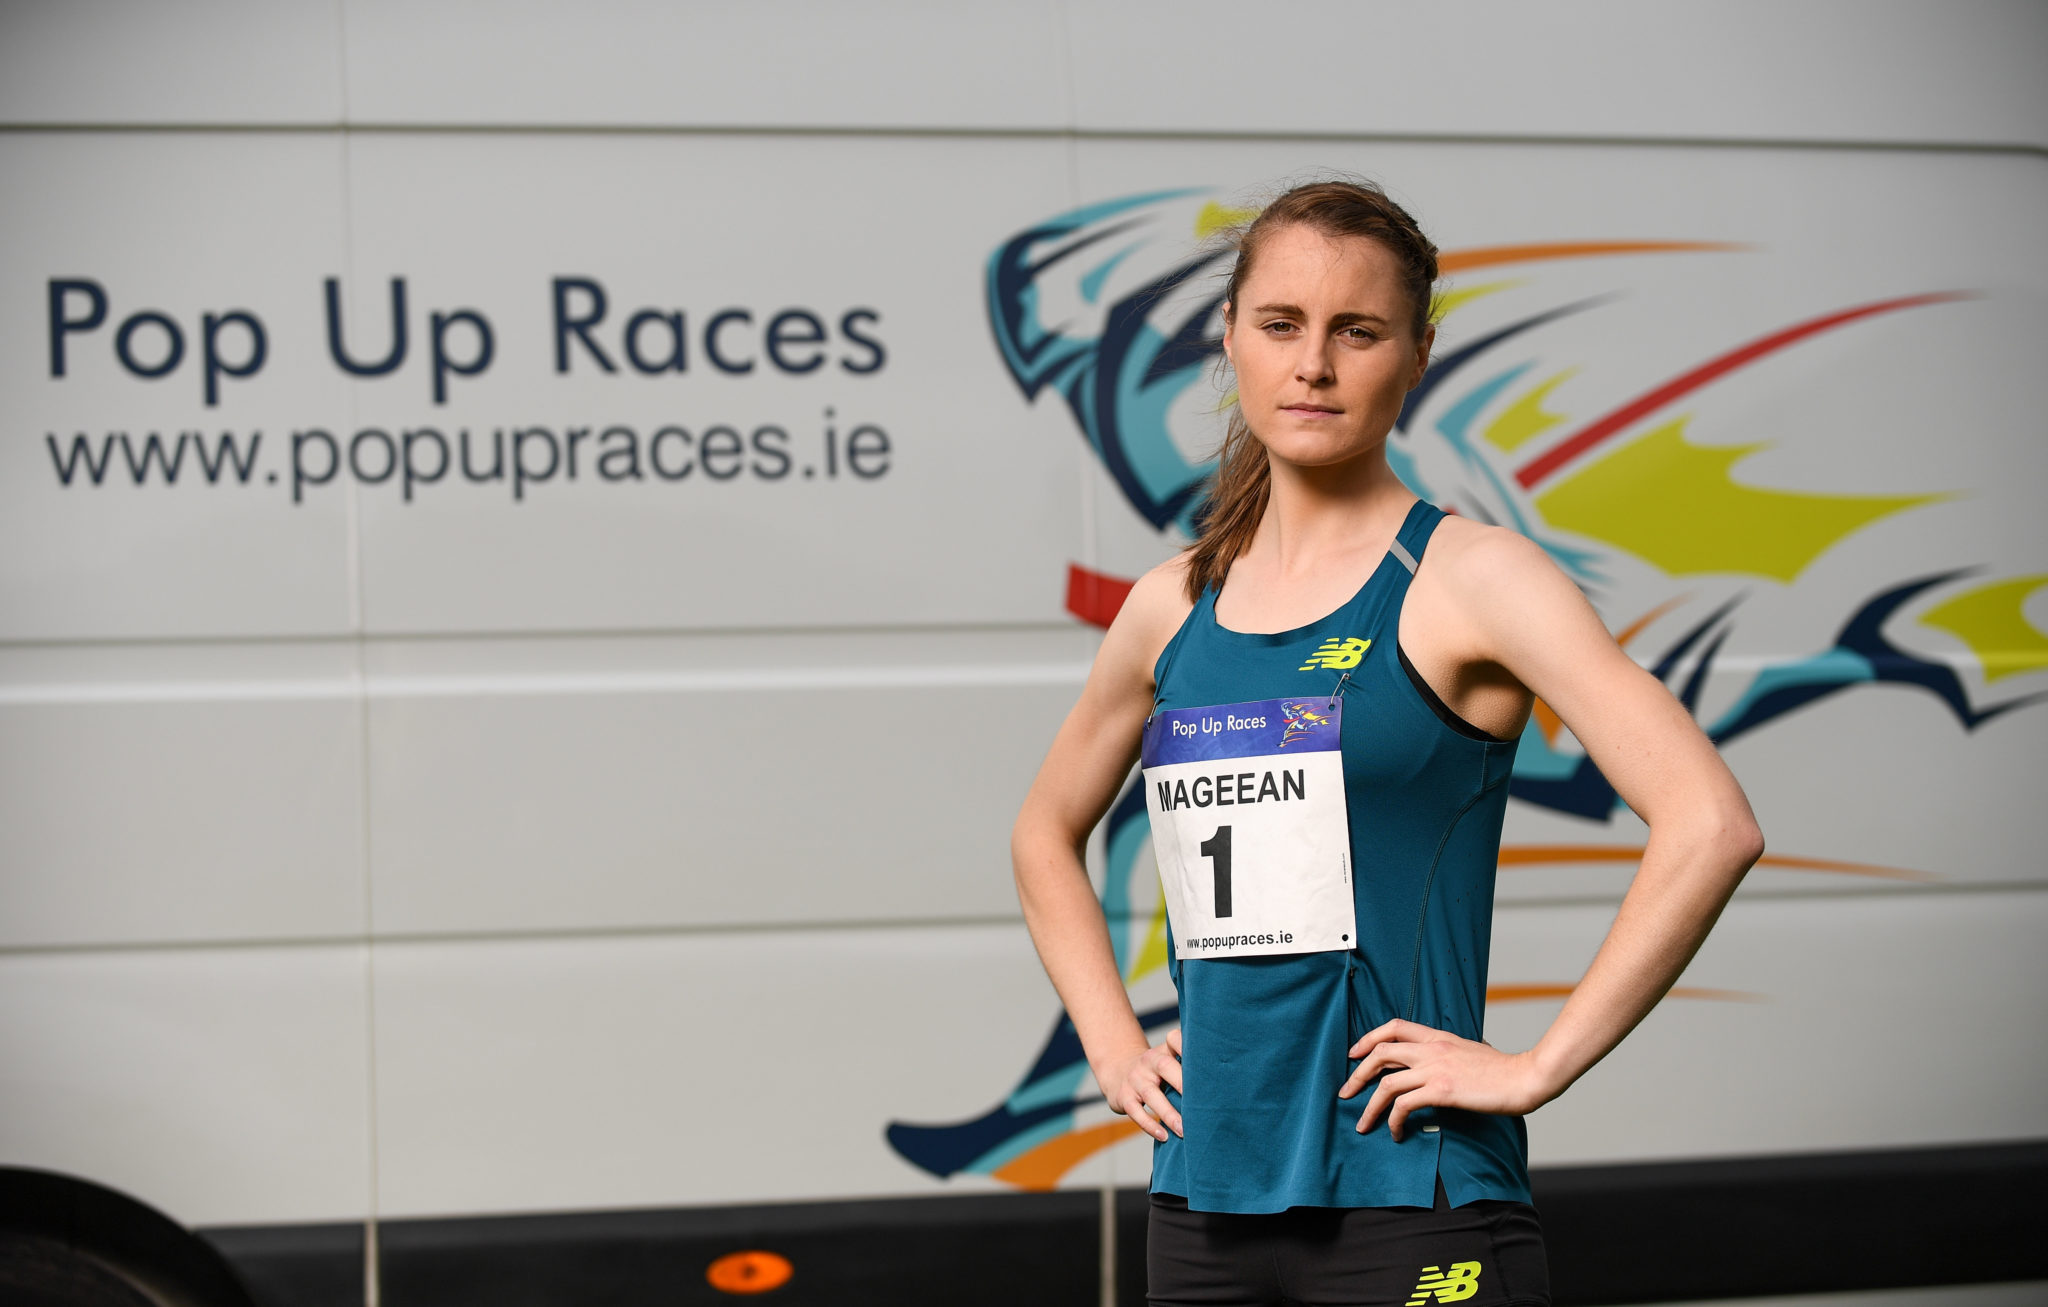 Irish Athletes at the World Championships – All you need to know